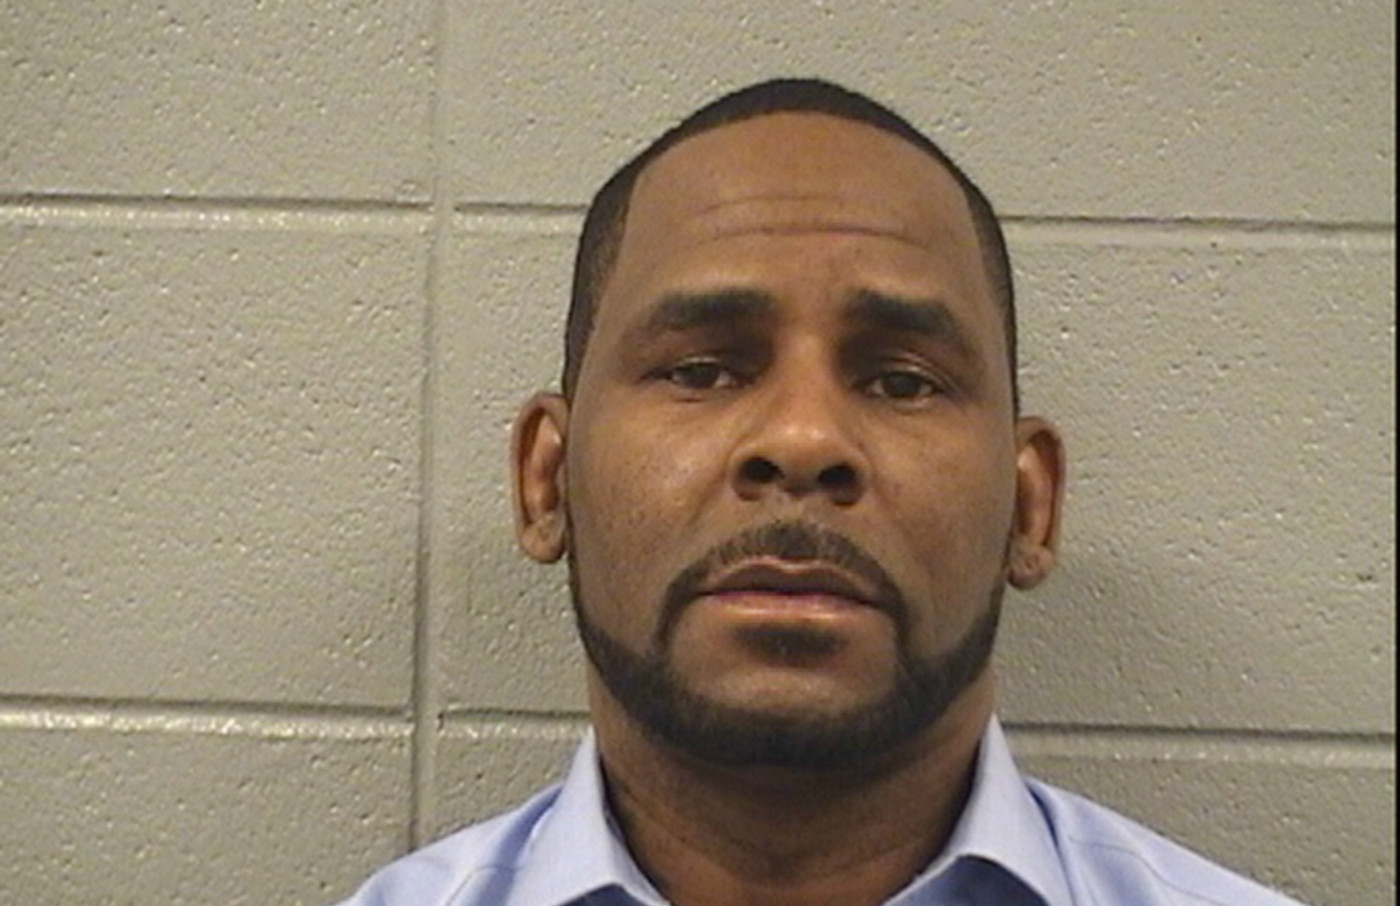 R. Kelly poses for a mugshot photo